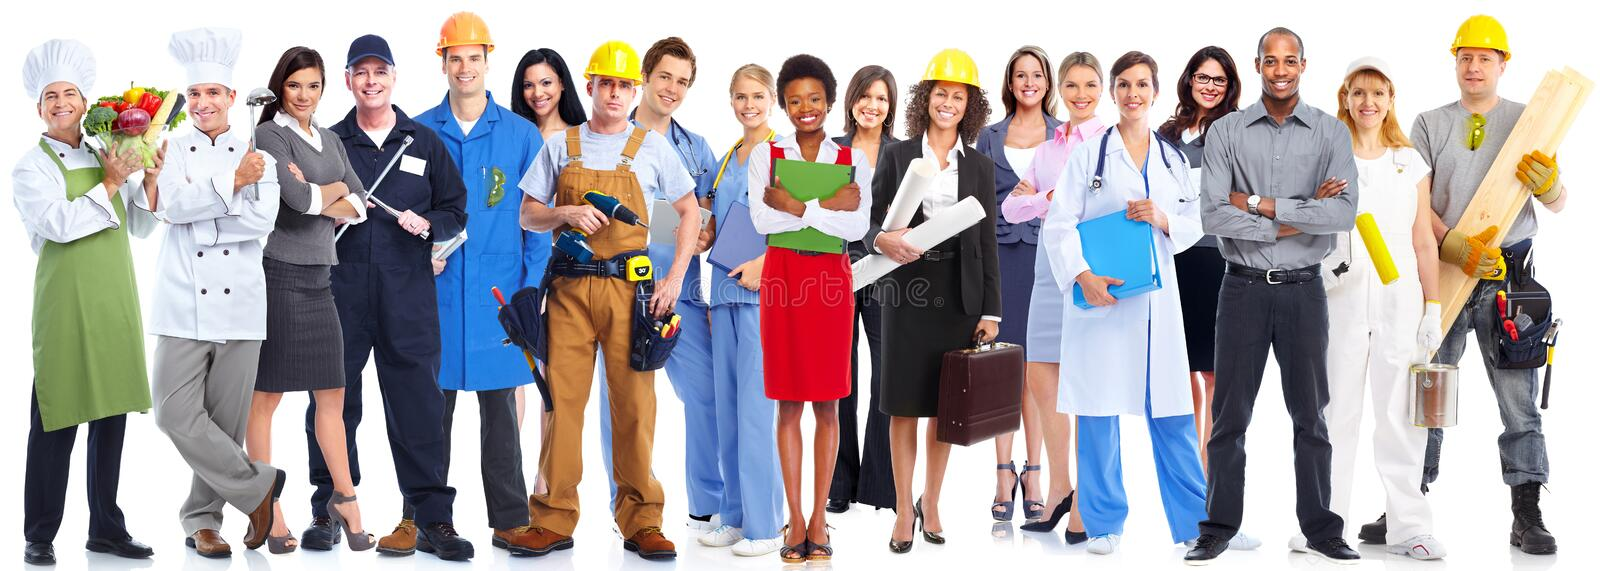 Business people workers group. stock photography